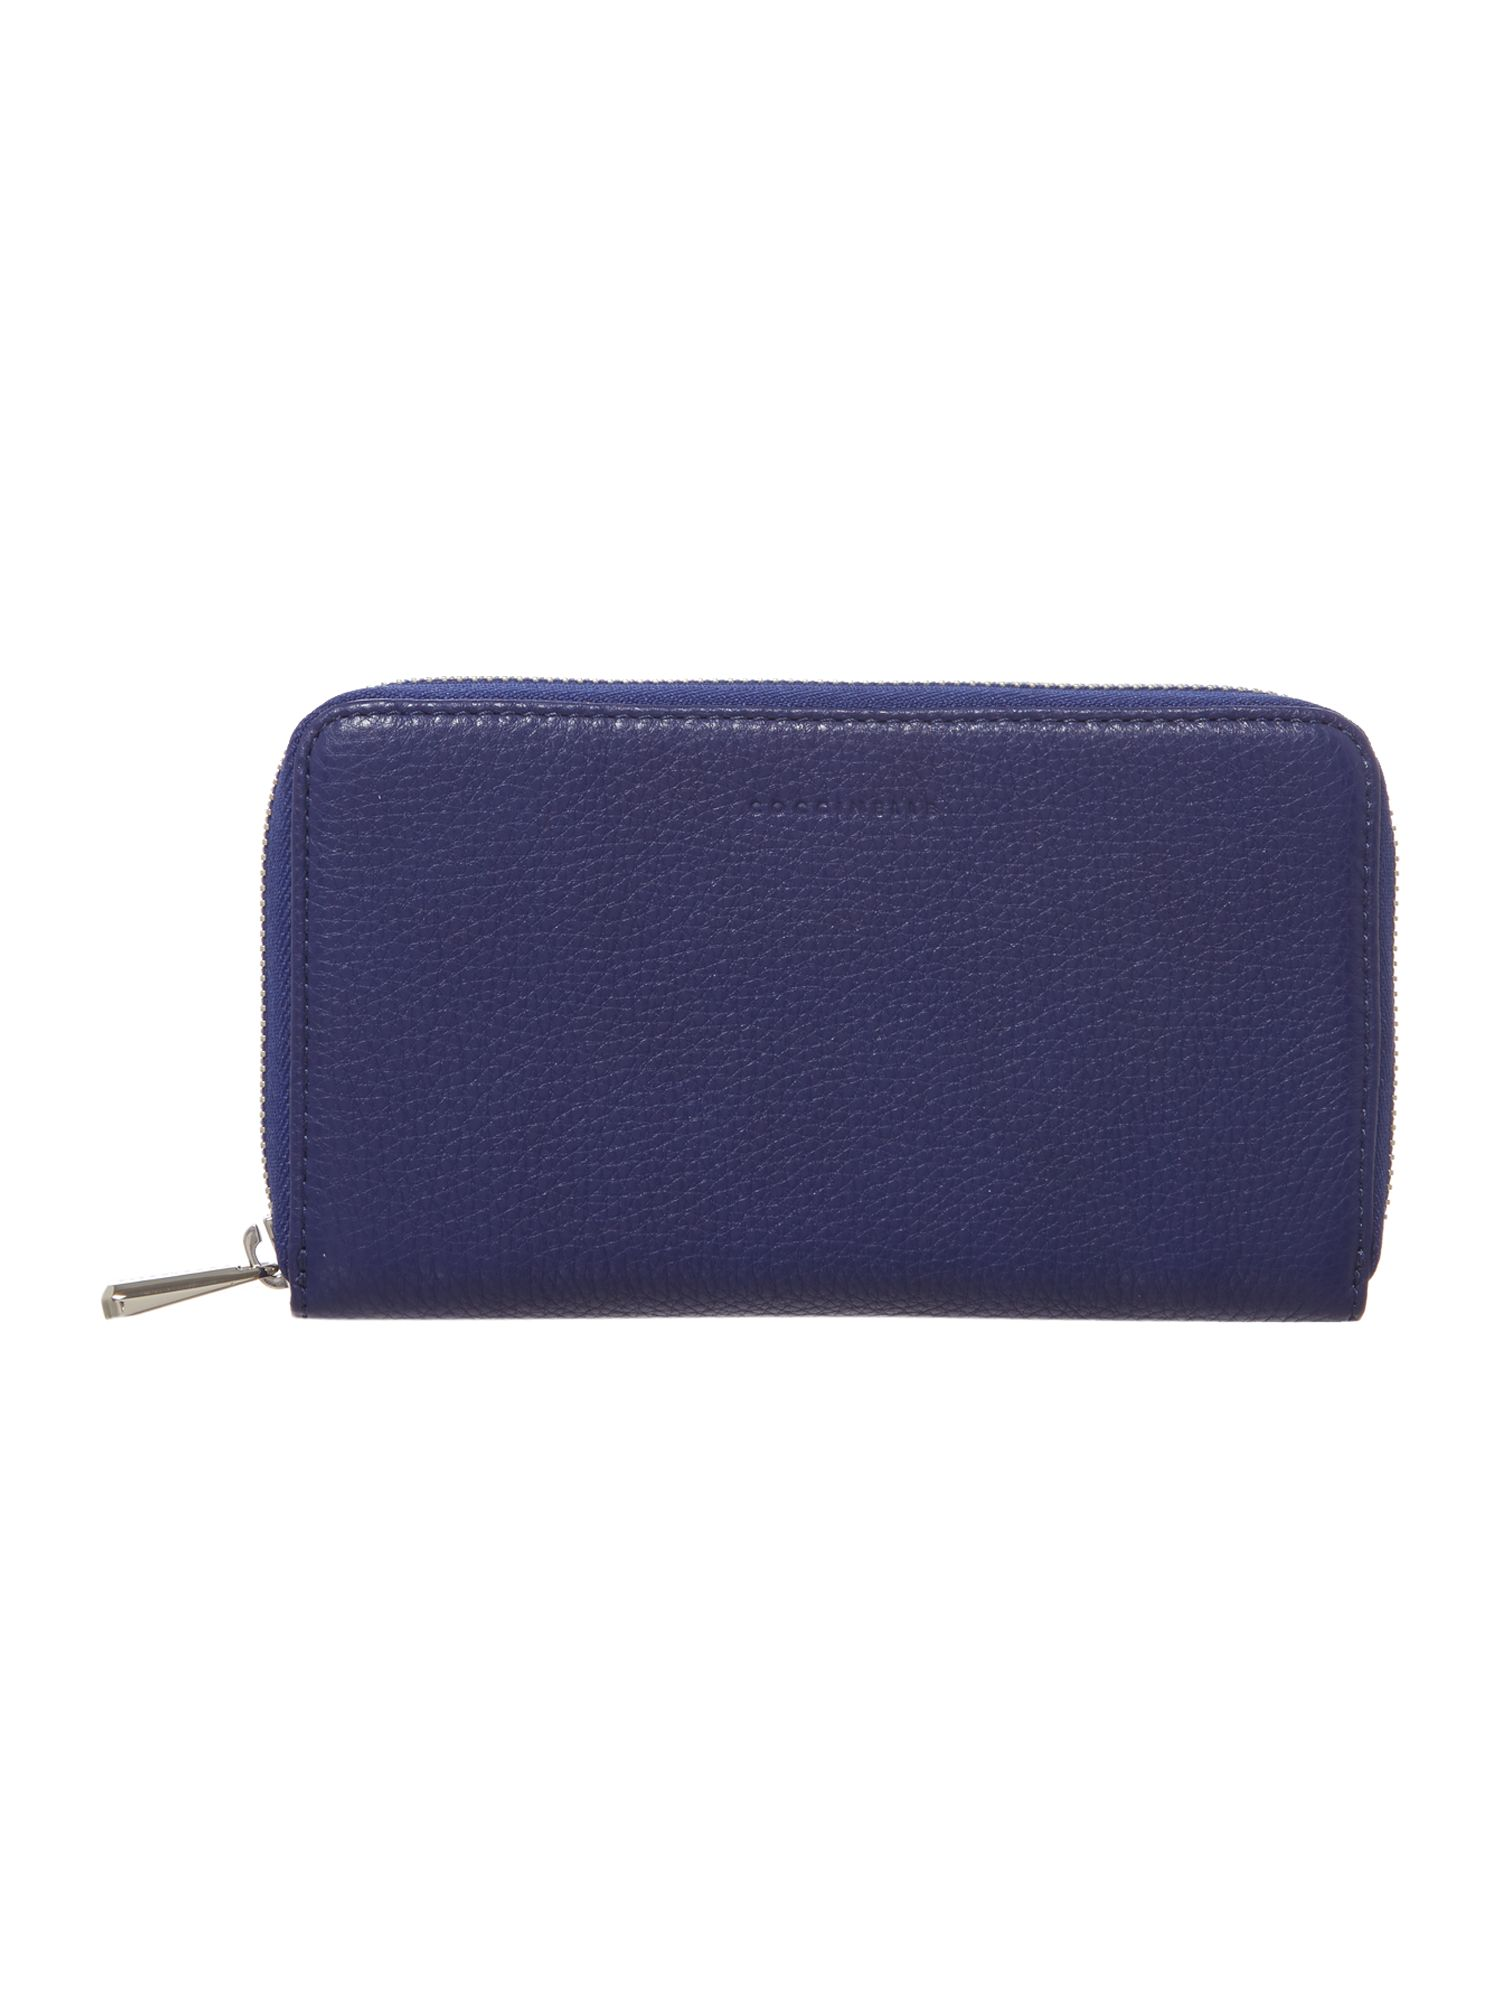 Blue large zip around purse